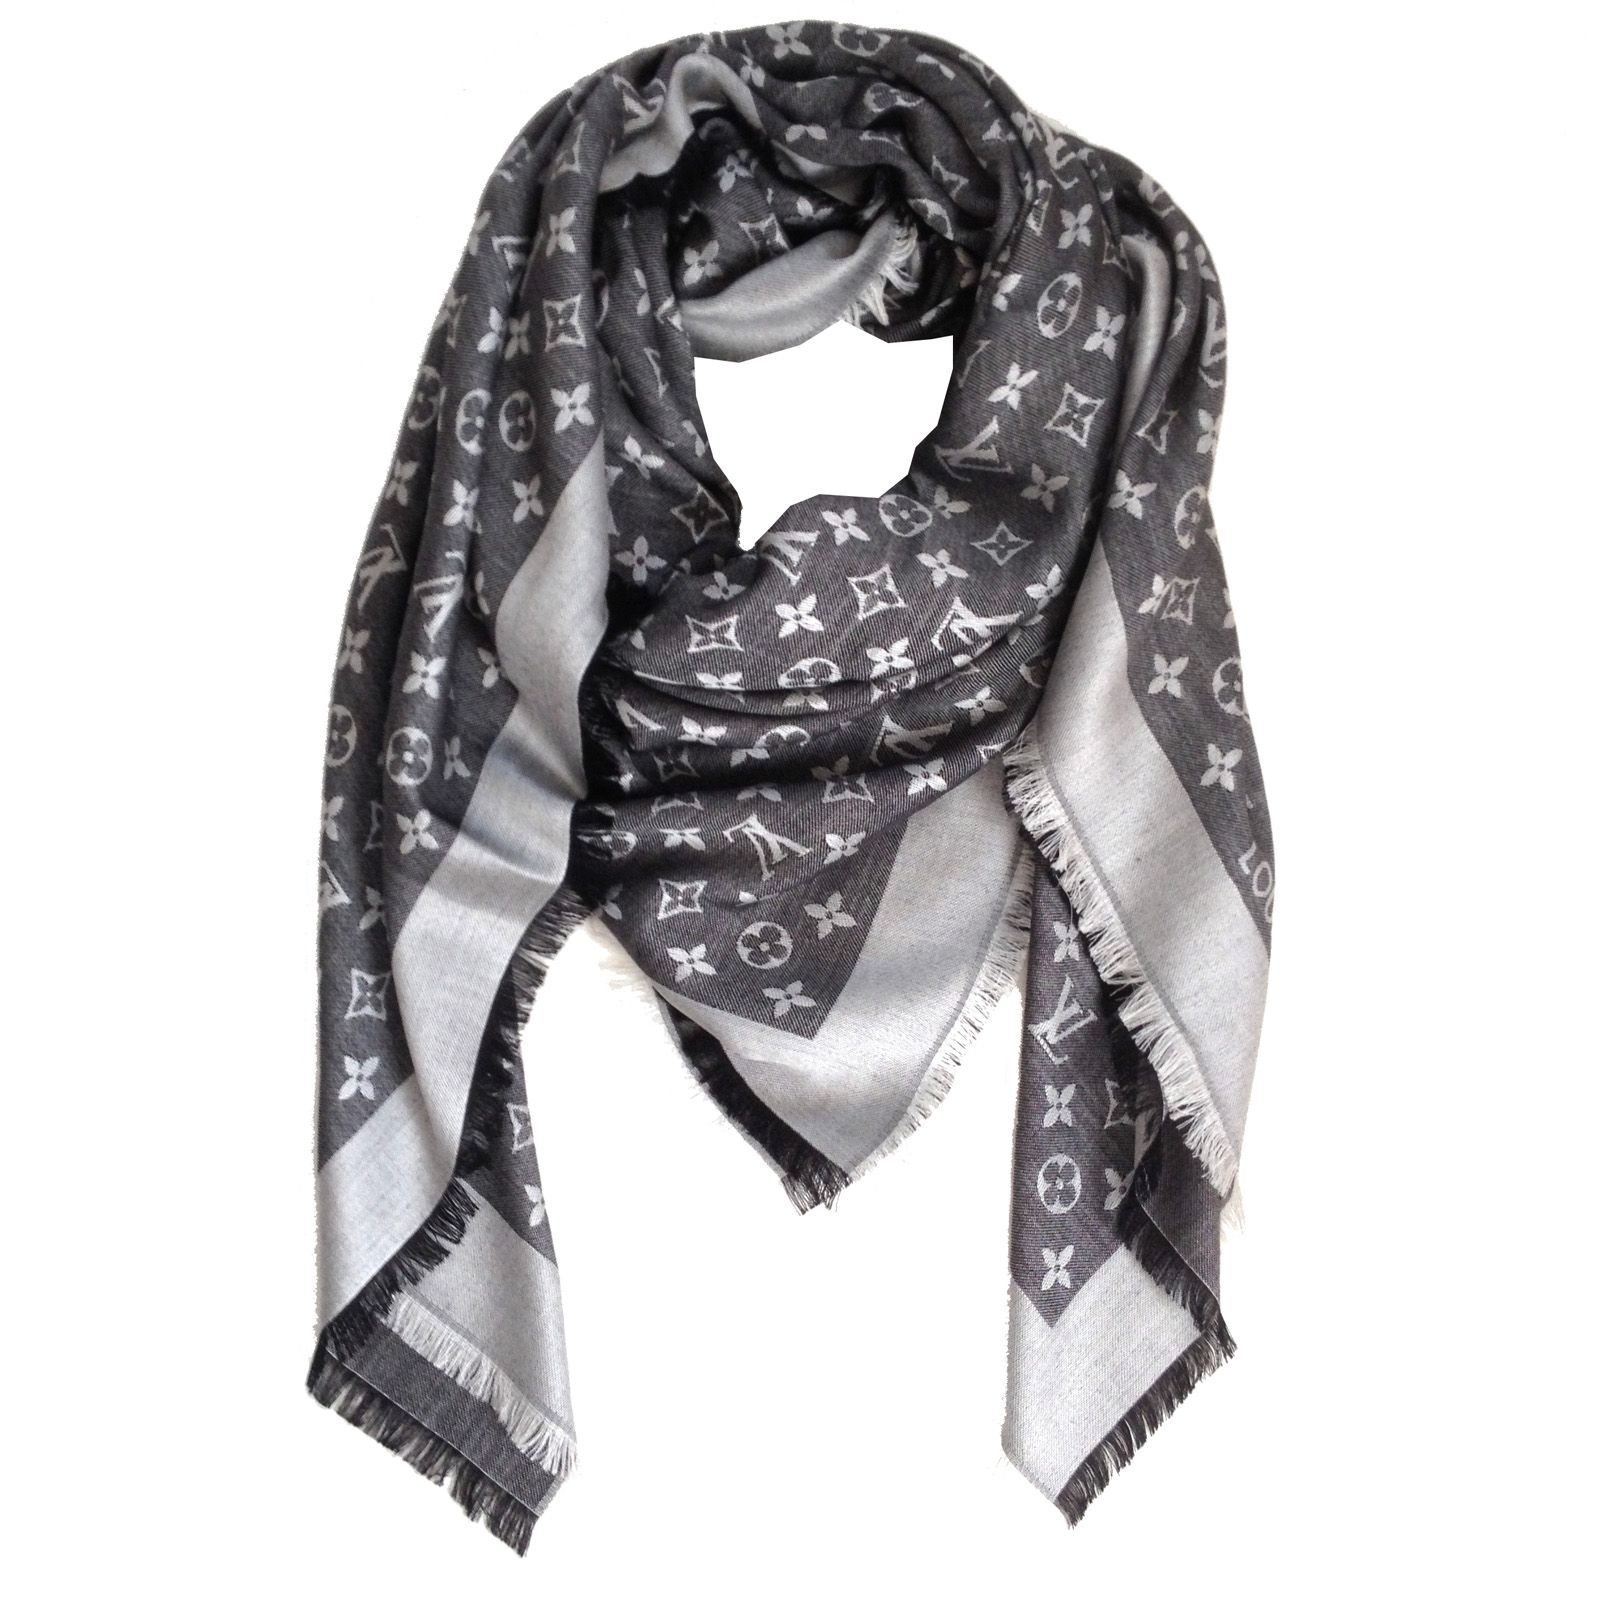 01adcd57d Louis Vuitton Scarf Monogram Denim Shawl Black | Stitch Fix Pin ...